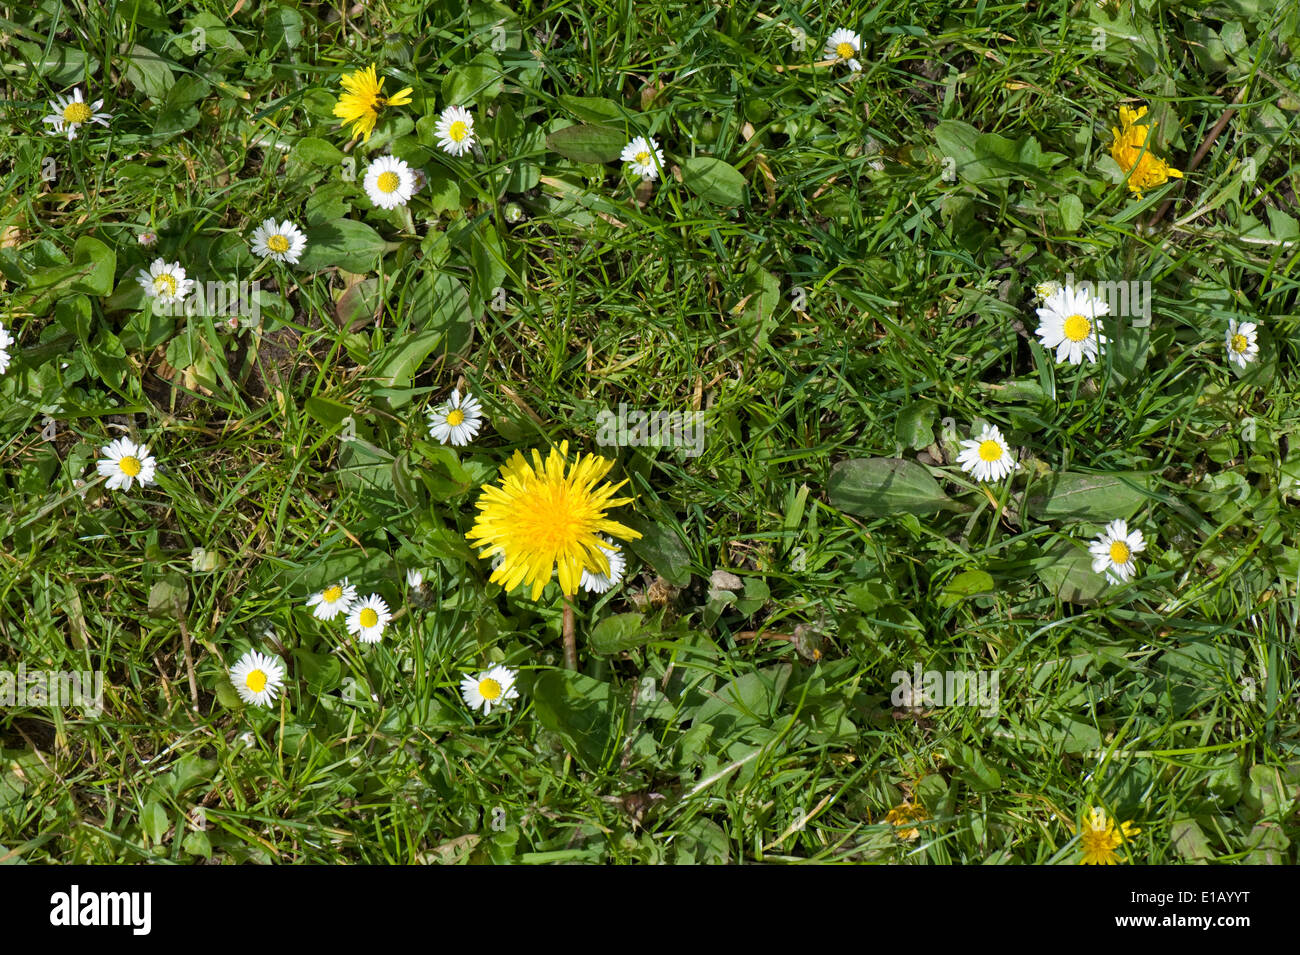 Flowering dandelions and daisies in a rough garden lawn in spring - Stock Image